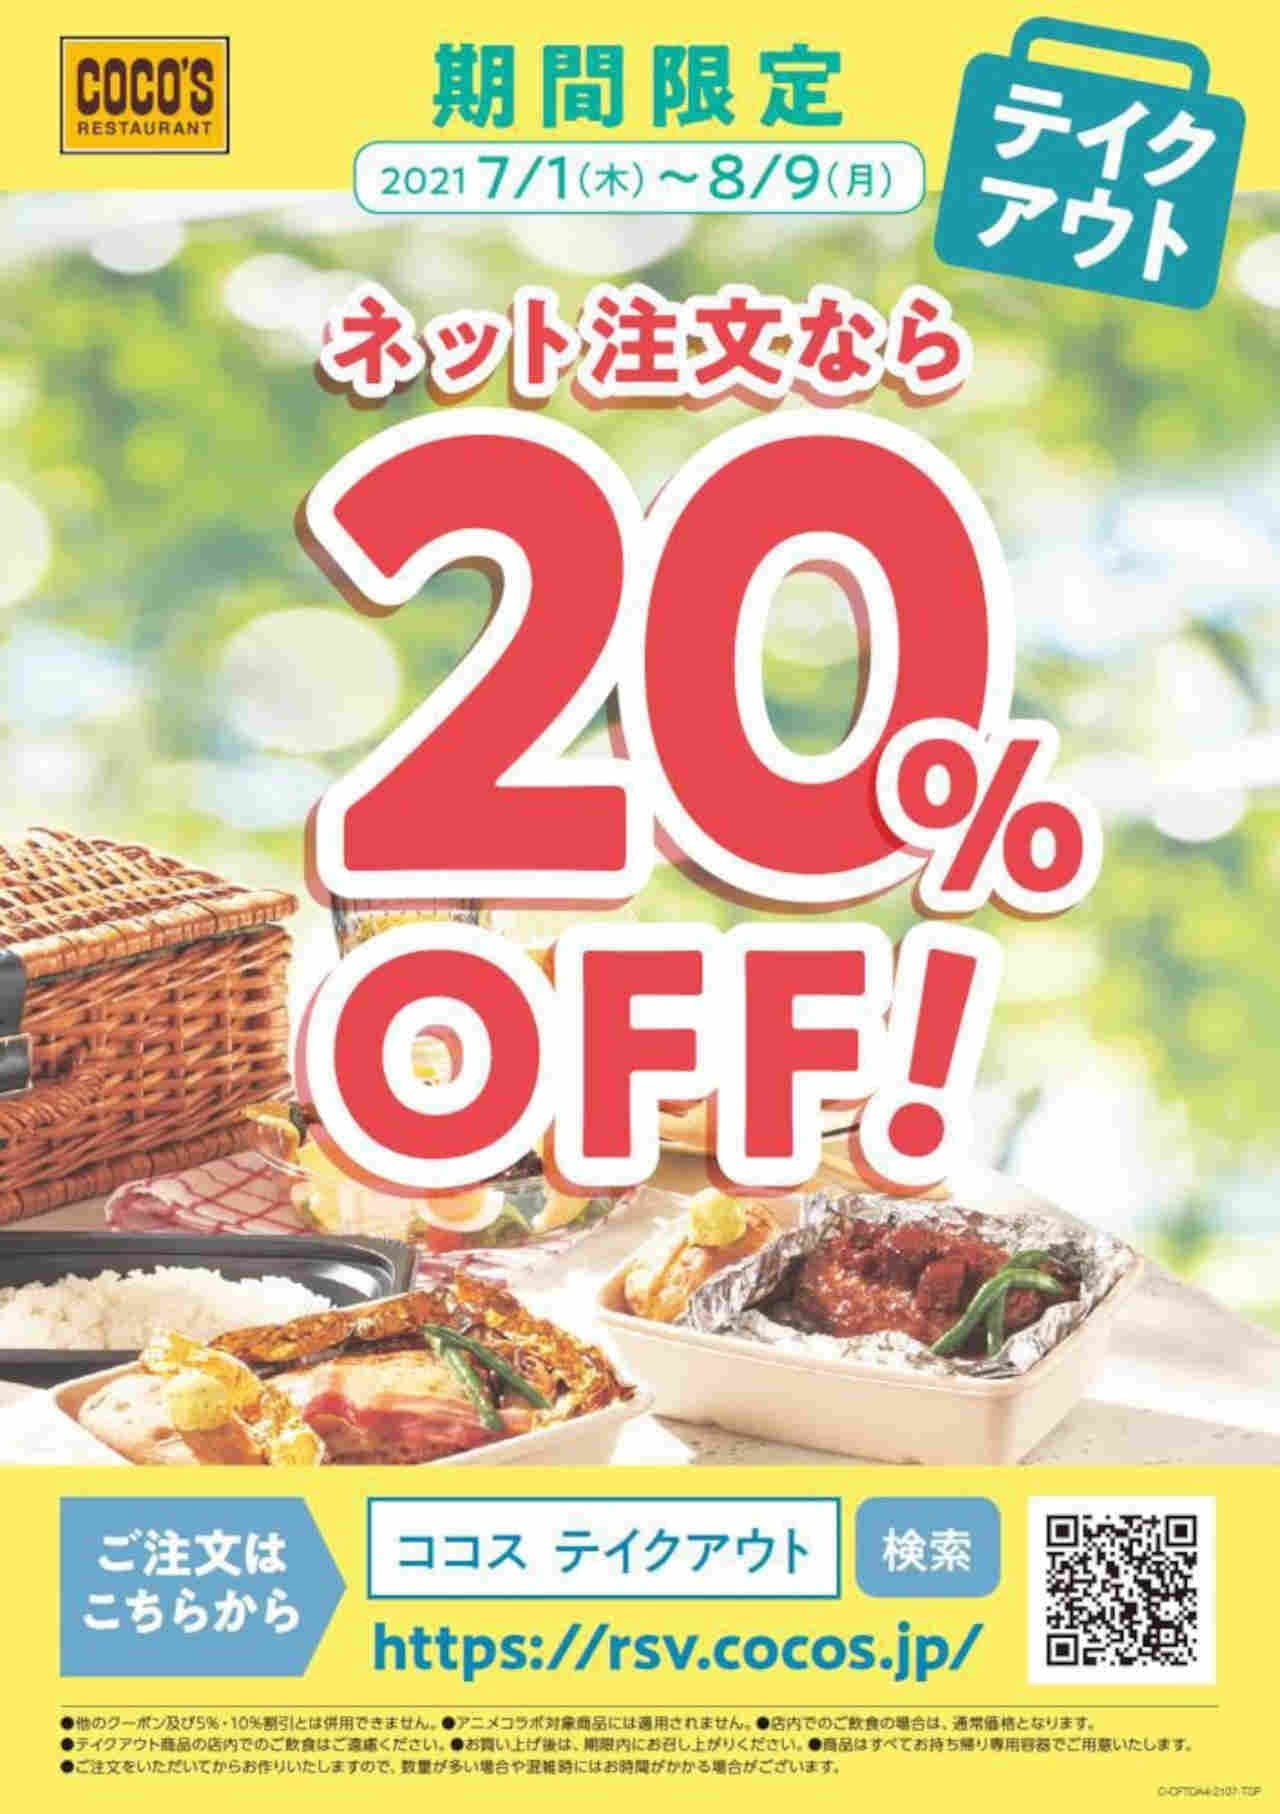 """Coco's """"Online order limited takeout 20% OFF campaign"""" for all products"""